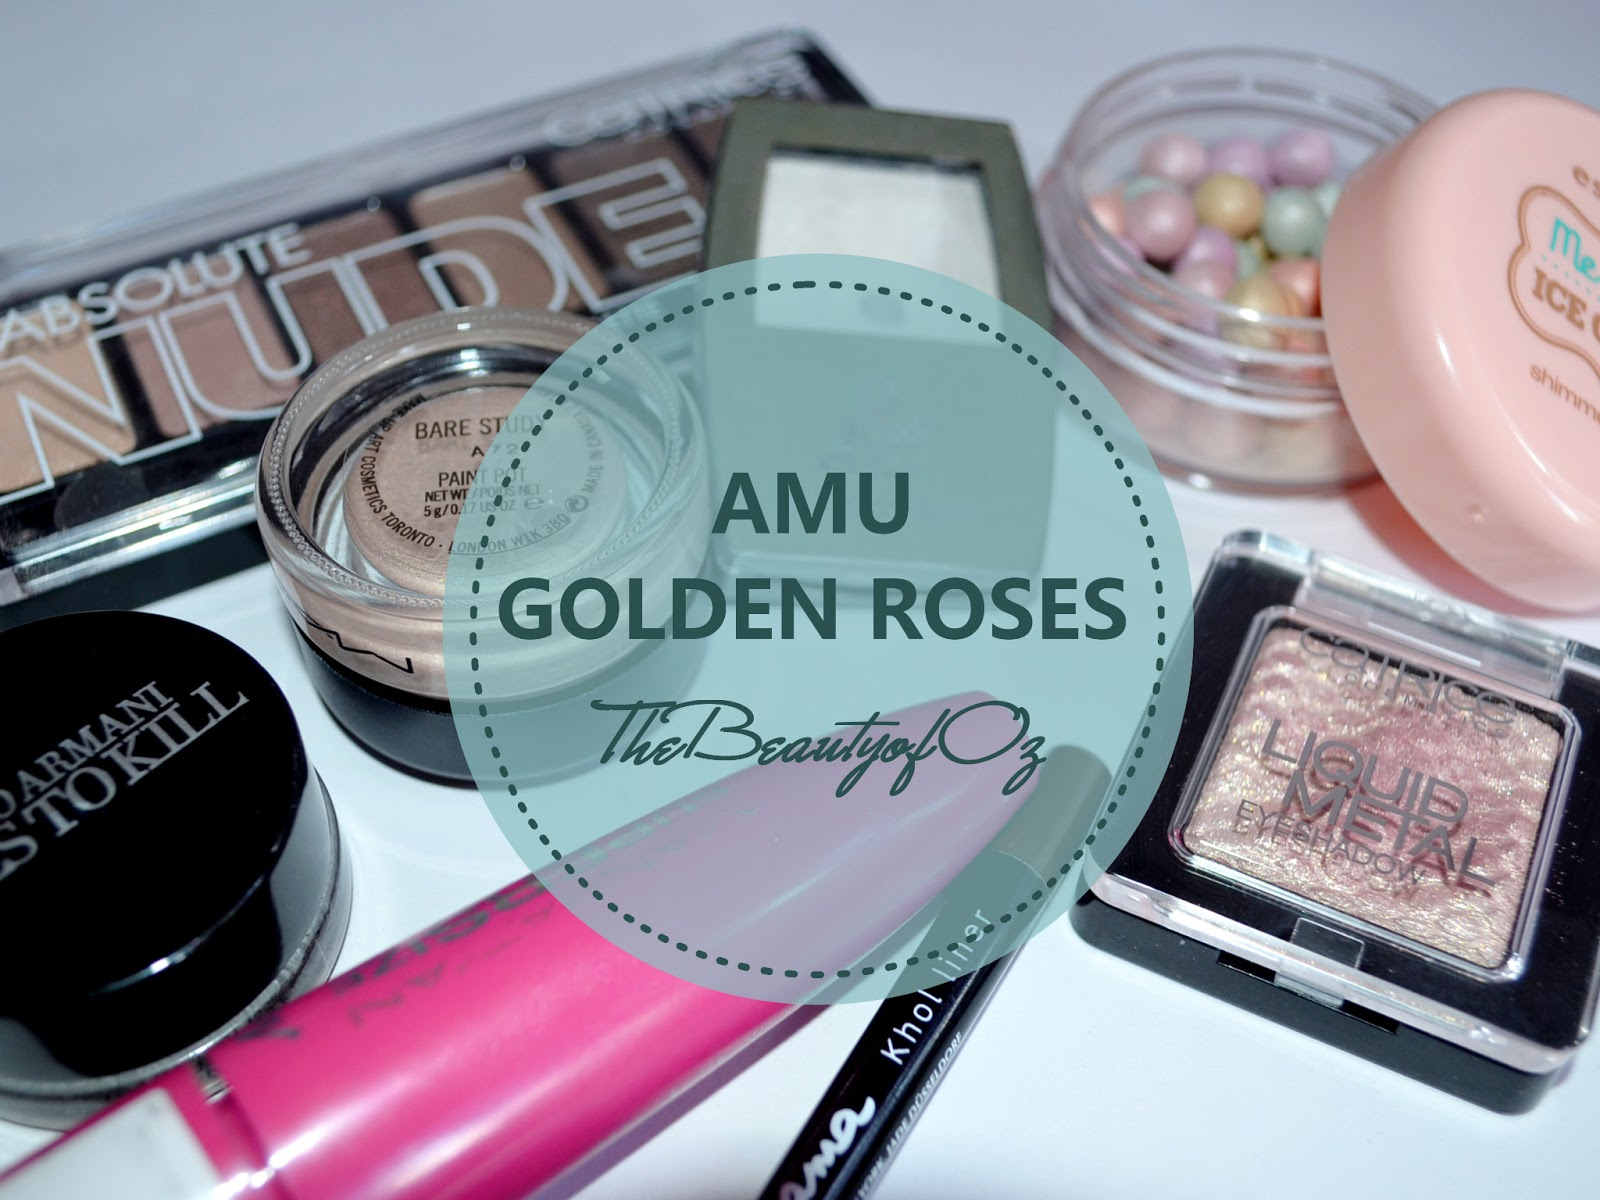 AMU Goldn Roses